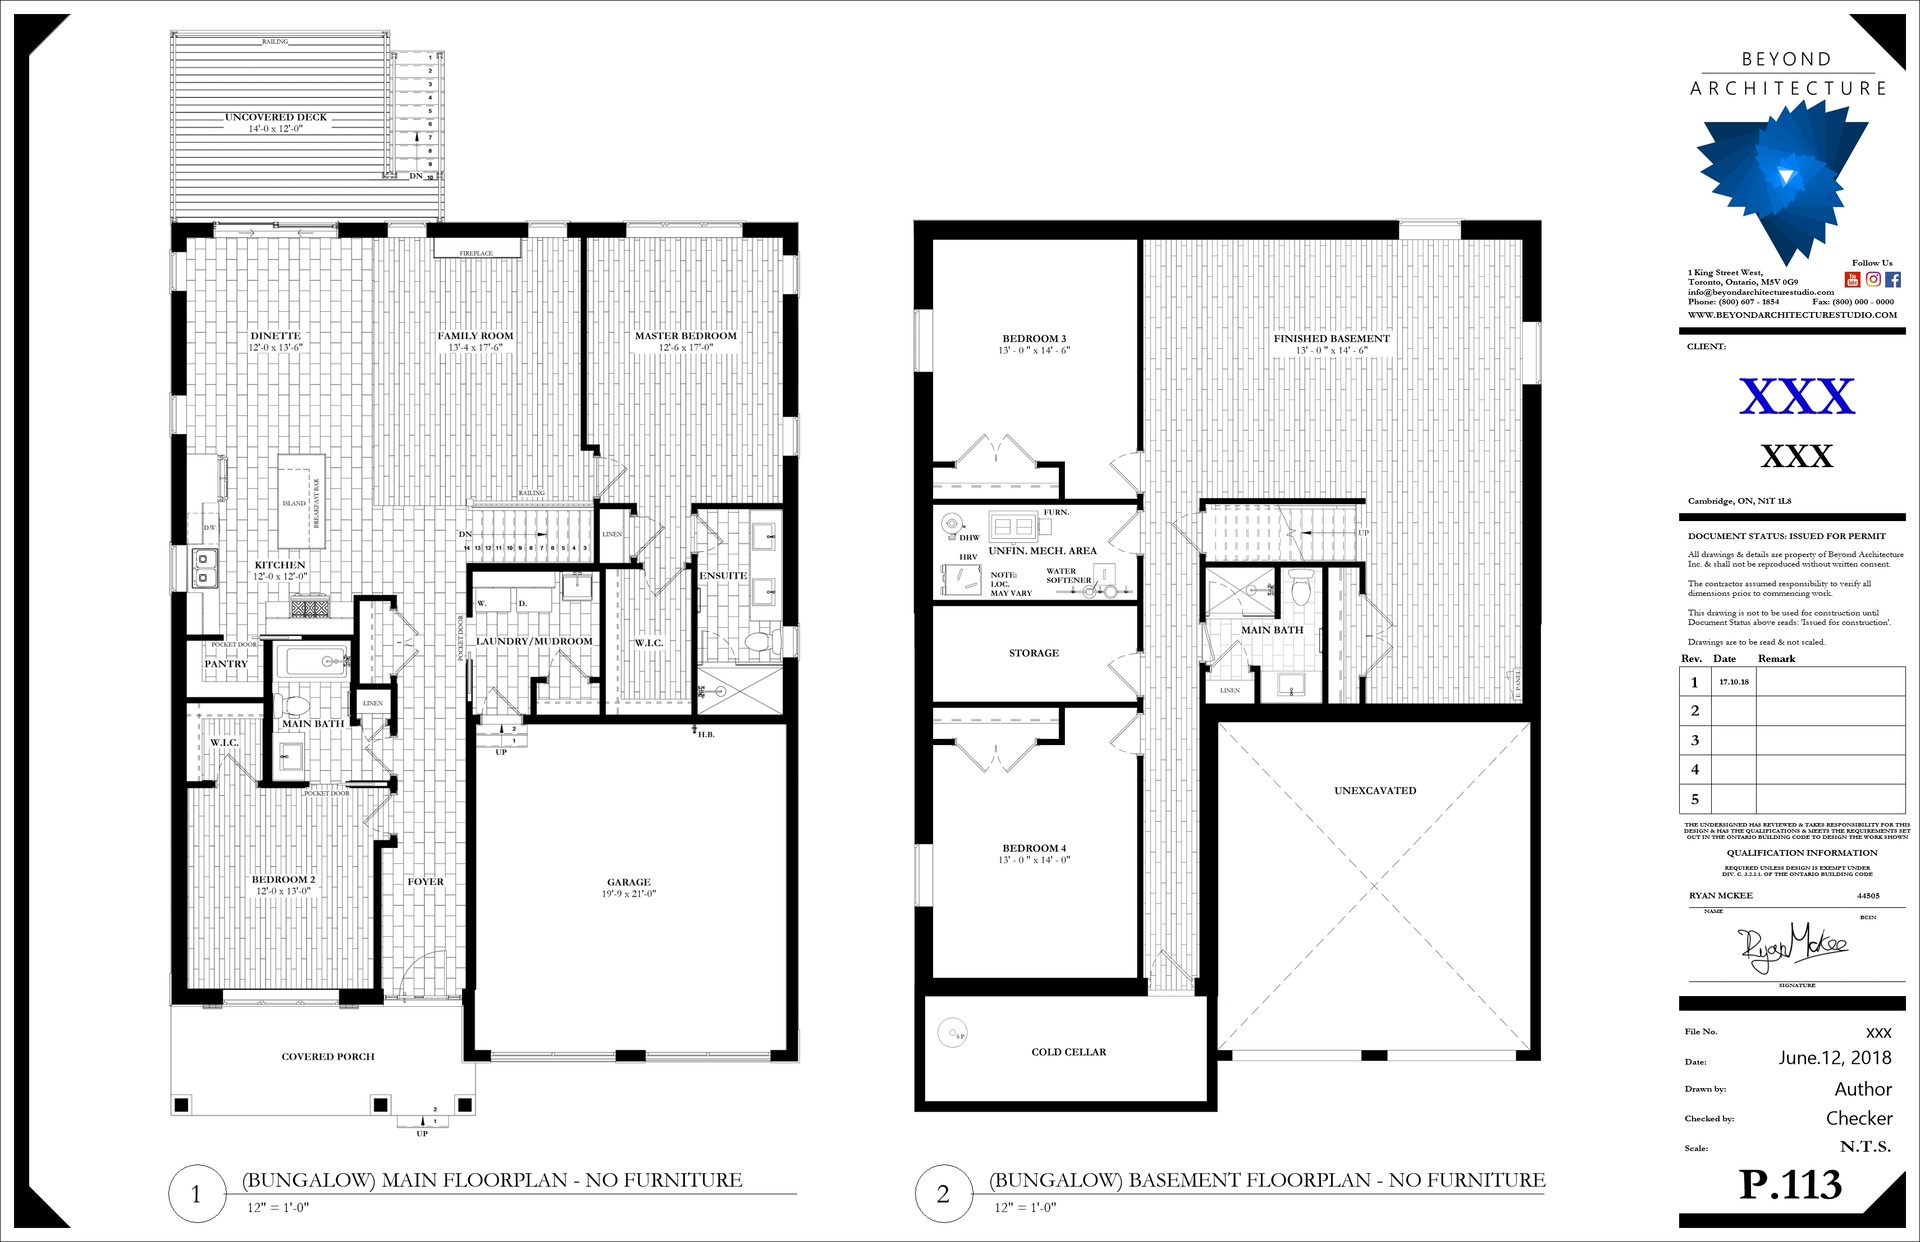 Beyond Architecture Revit Template Bungalow